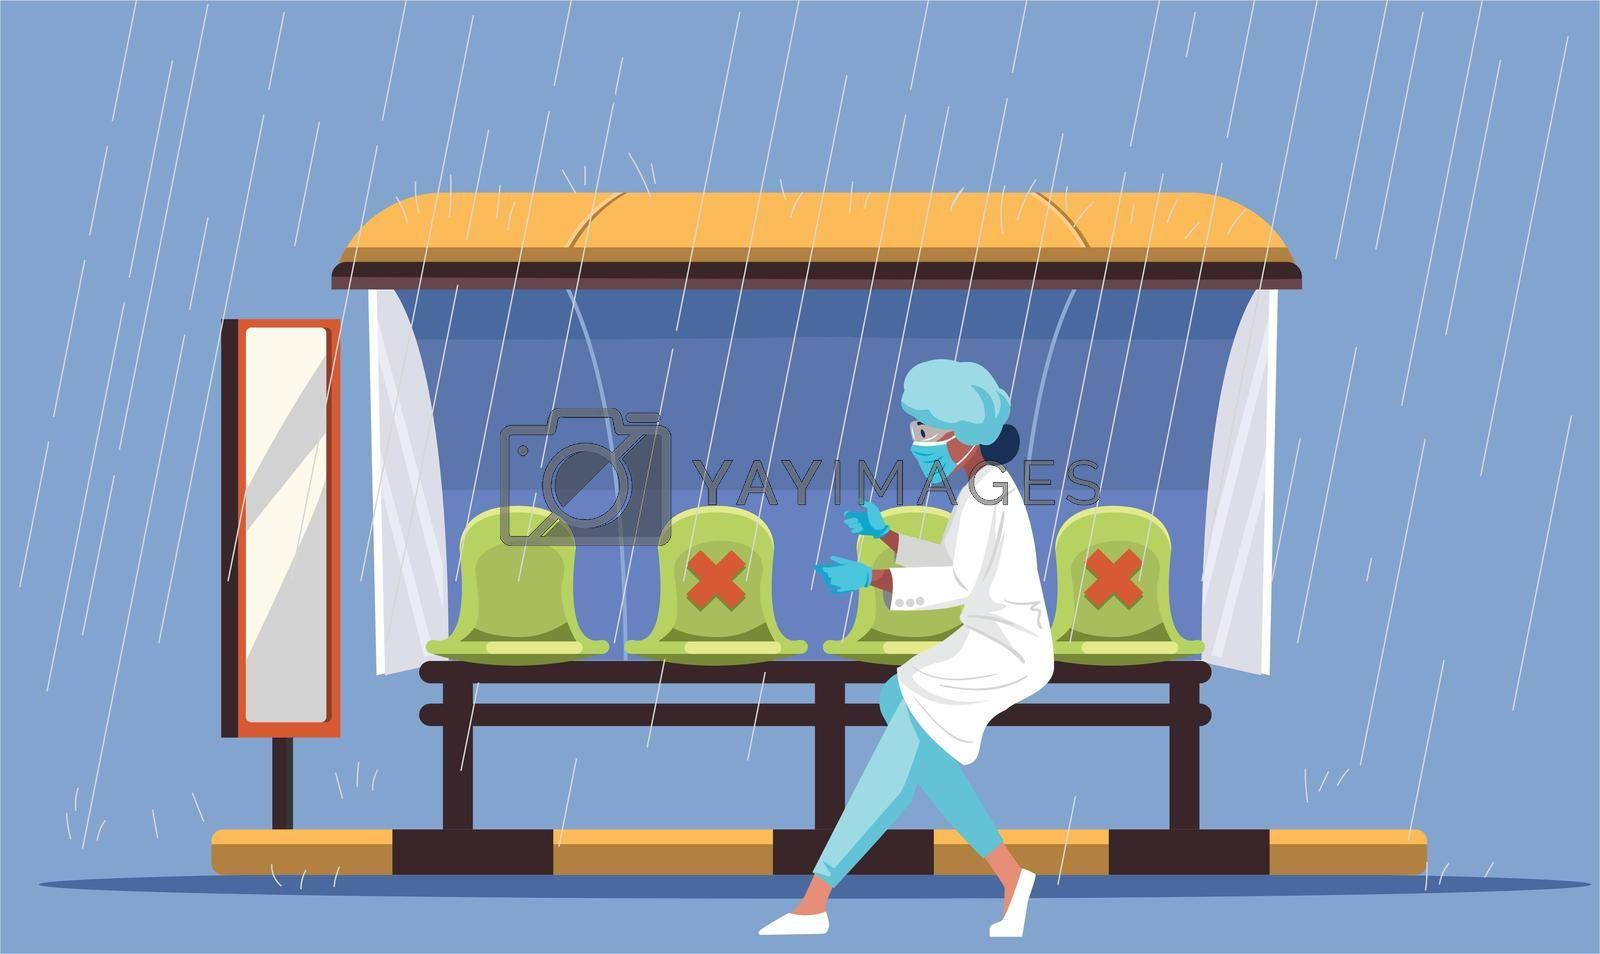 a woman is running on the road during rain